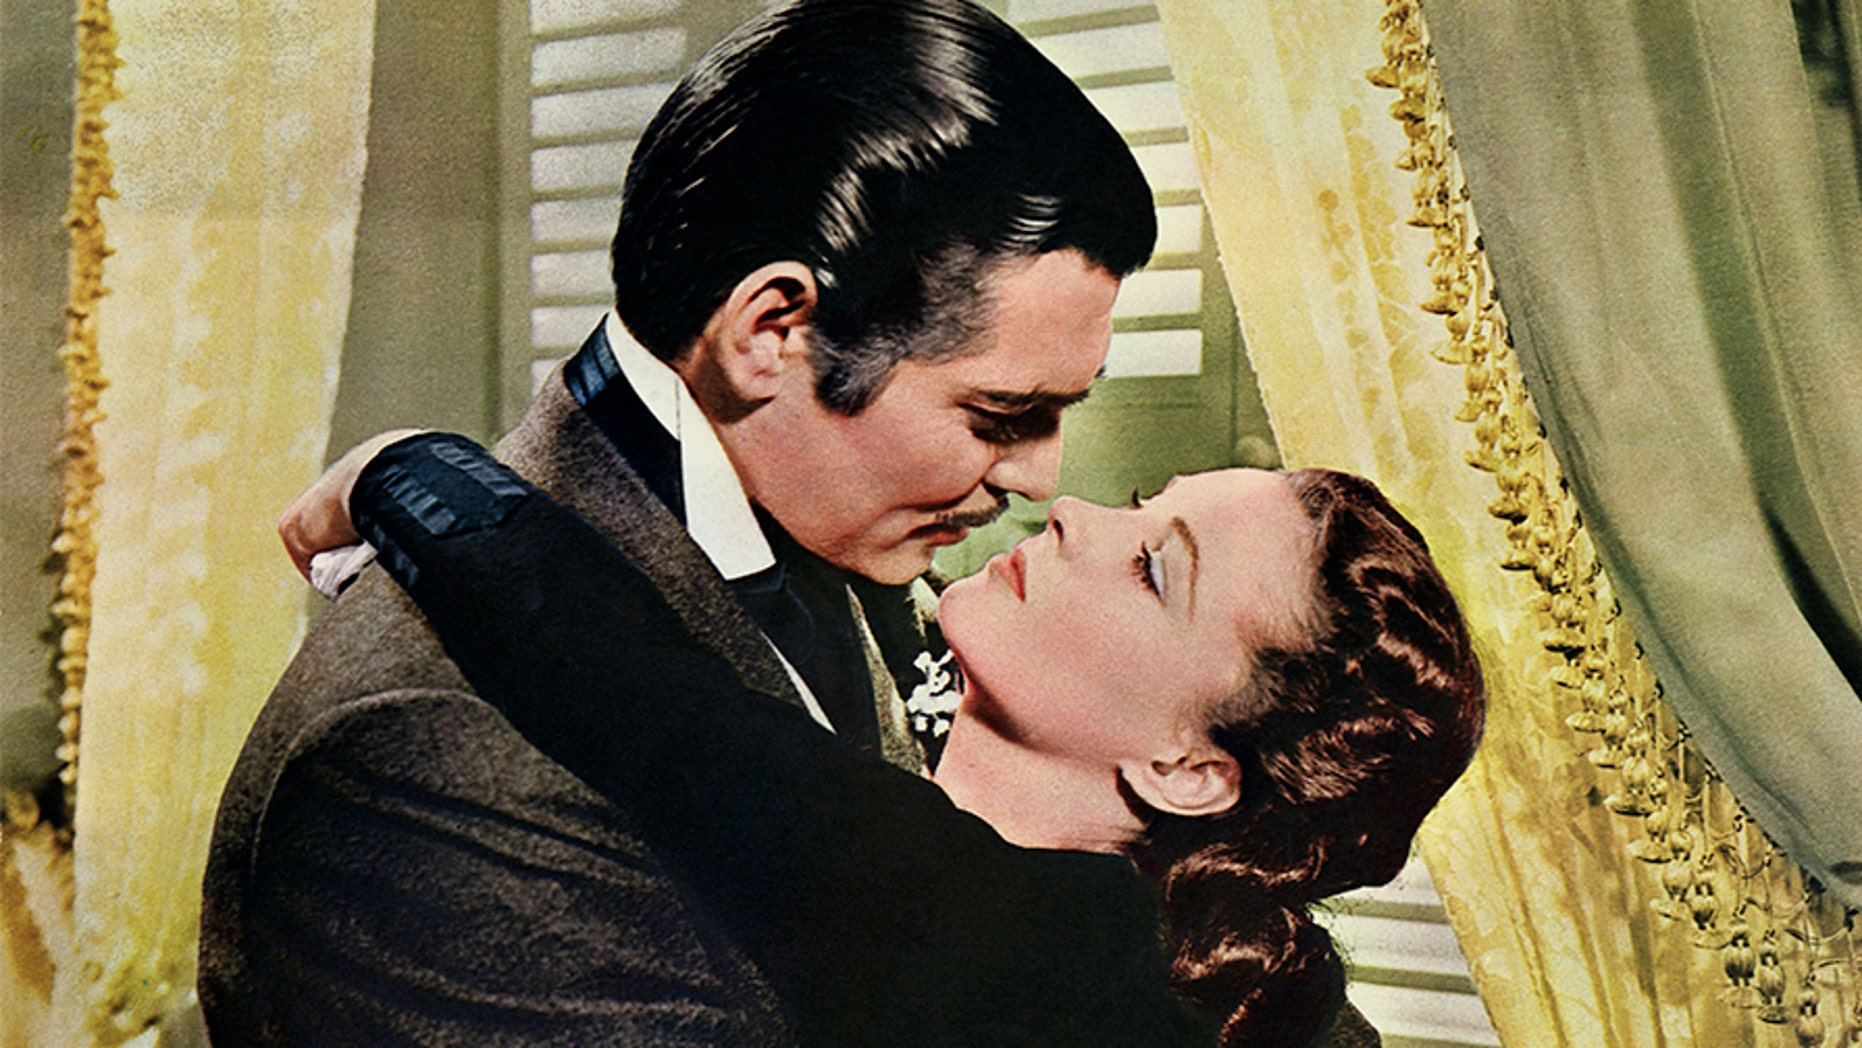 """Rhett Butler (Clark Gable) embraces Scarlett O'Hara (Vivien Leigh) in a famous scene from the 1939 epic film """"Gone with the Wind."""" — Getty"""